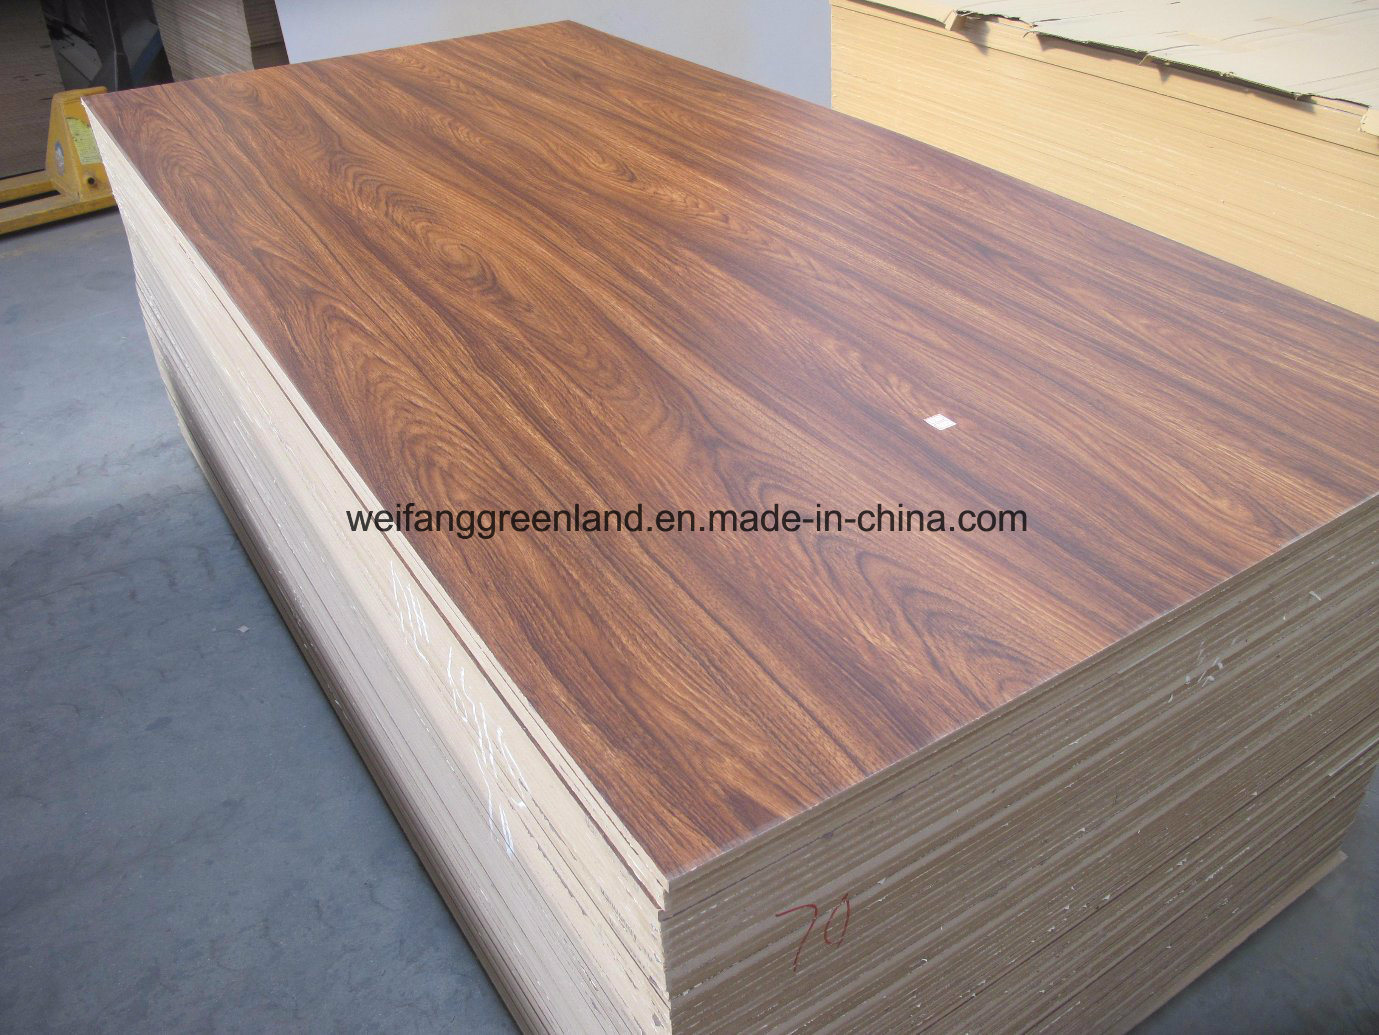 particle wood furniture. China 2018 New Designs Melamine Paper Laminated Plywood/MDF/Particle Board For Furniture - MDF, Plain MDF Particle Wood